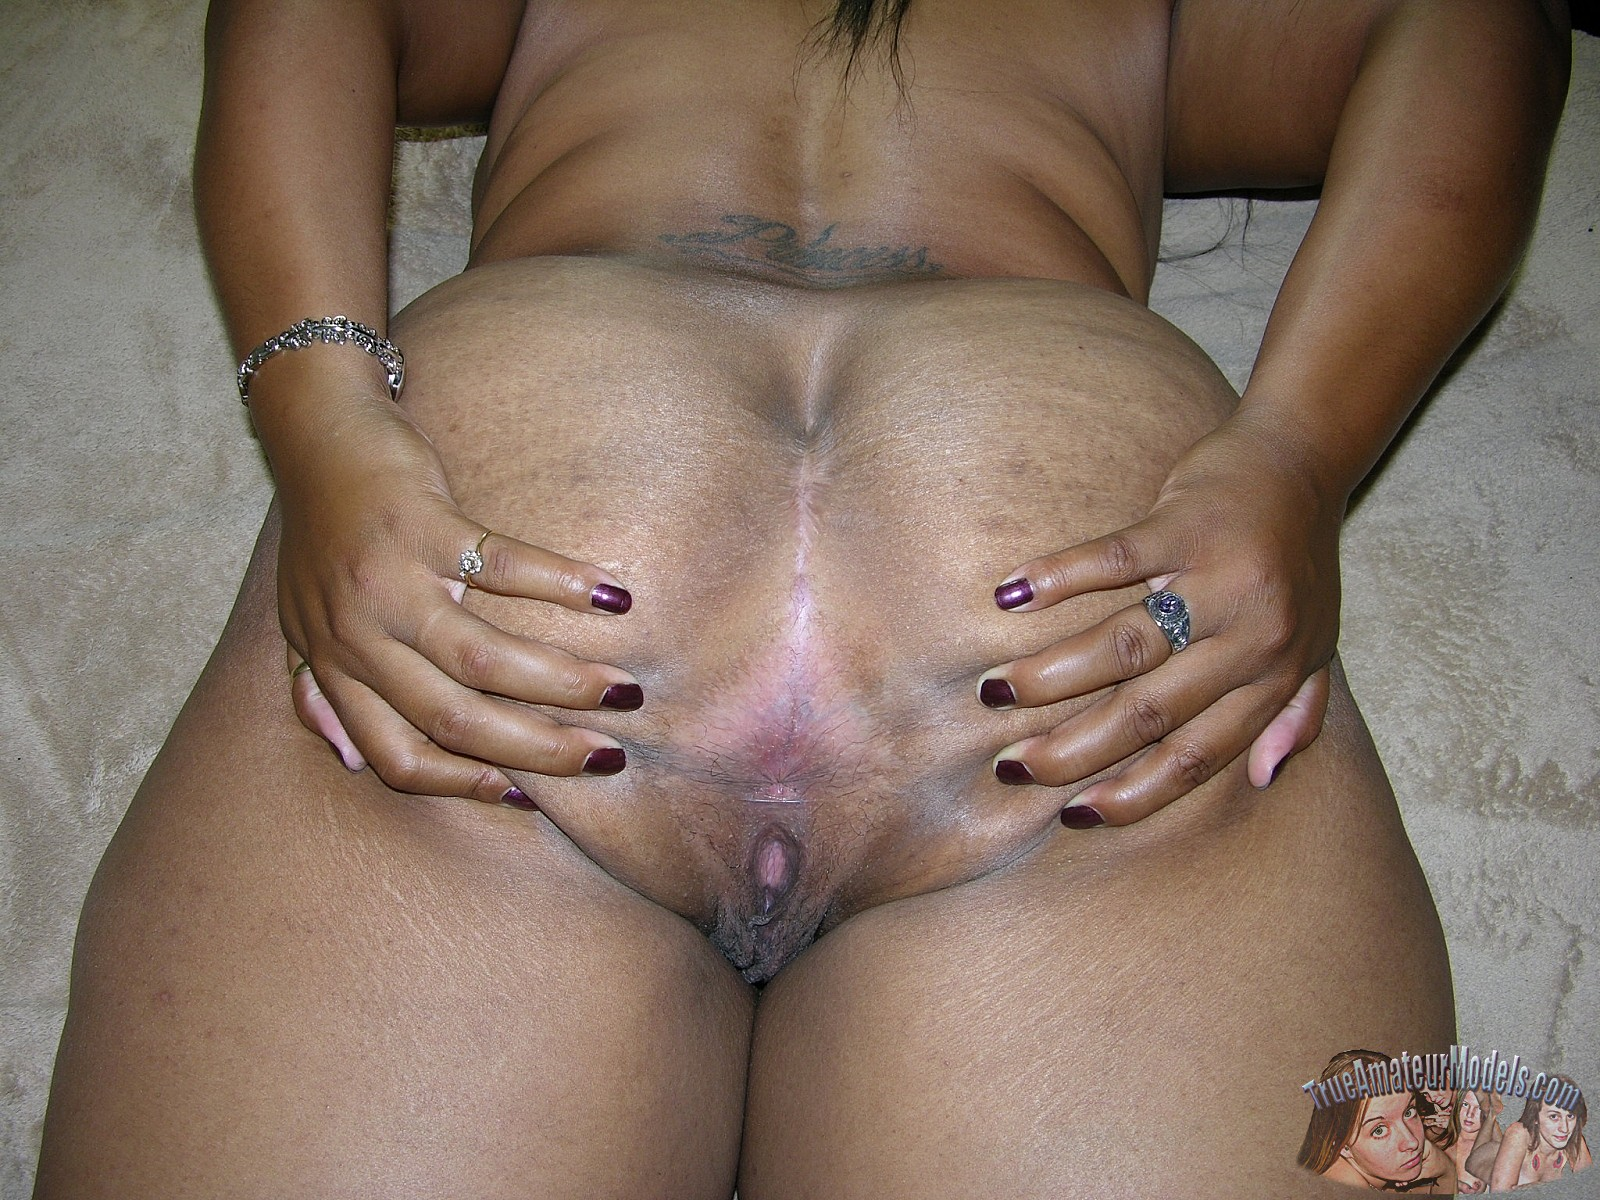 Bbw bbw black sex bbw gallery, mallu hot and neud photos